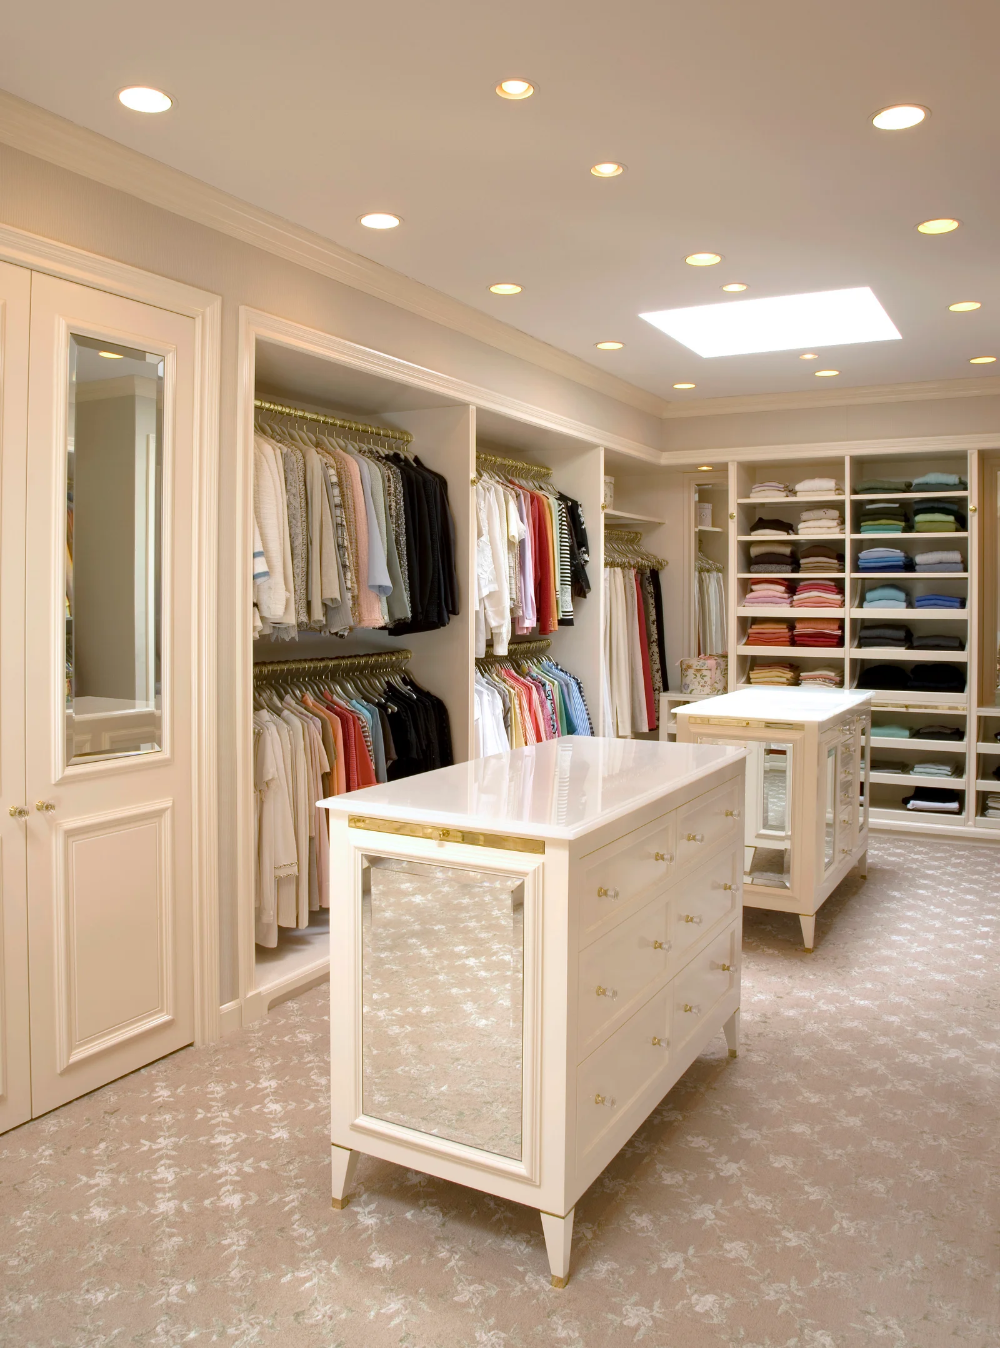 29 Best Closet Organization Ideas To Maximize Space And Style In 2020 Home Closet Designs Girls Dream Closet